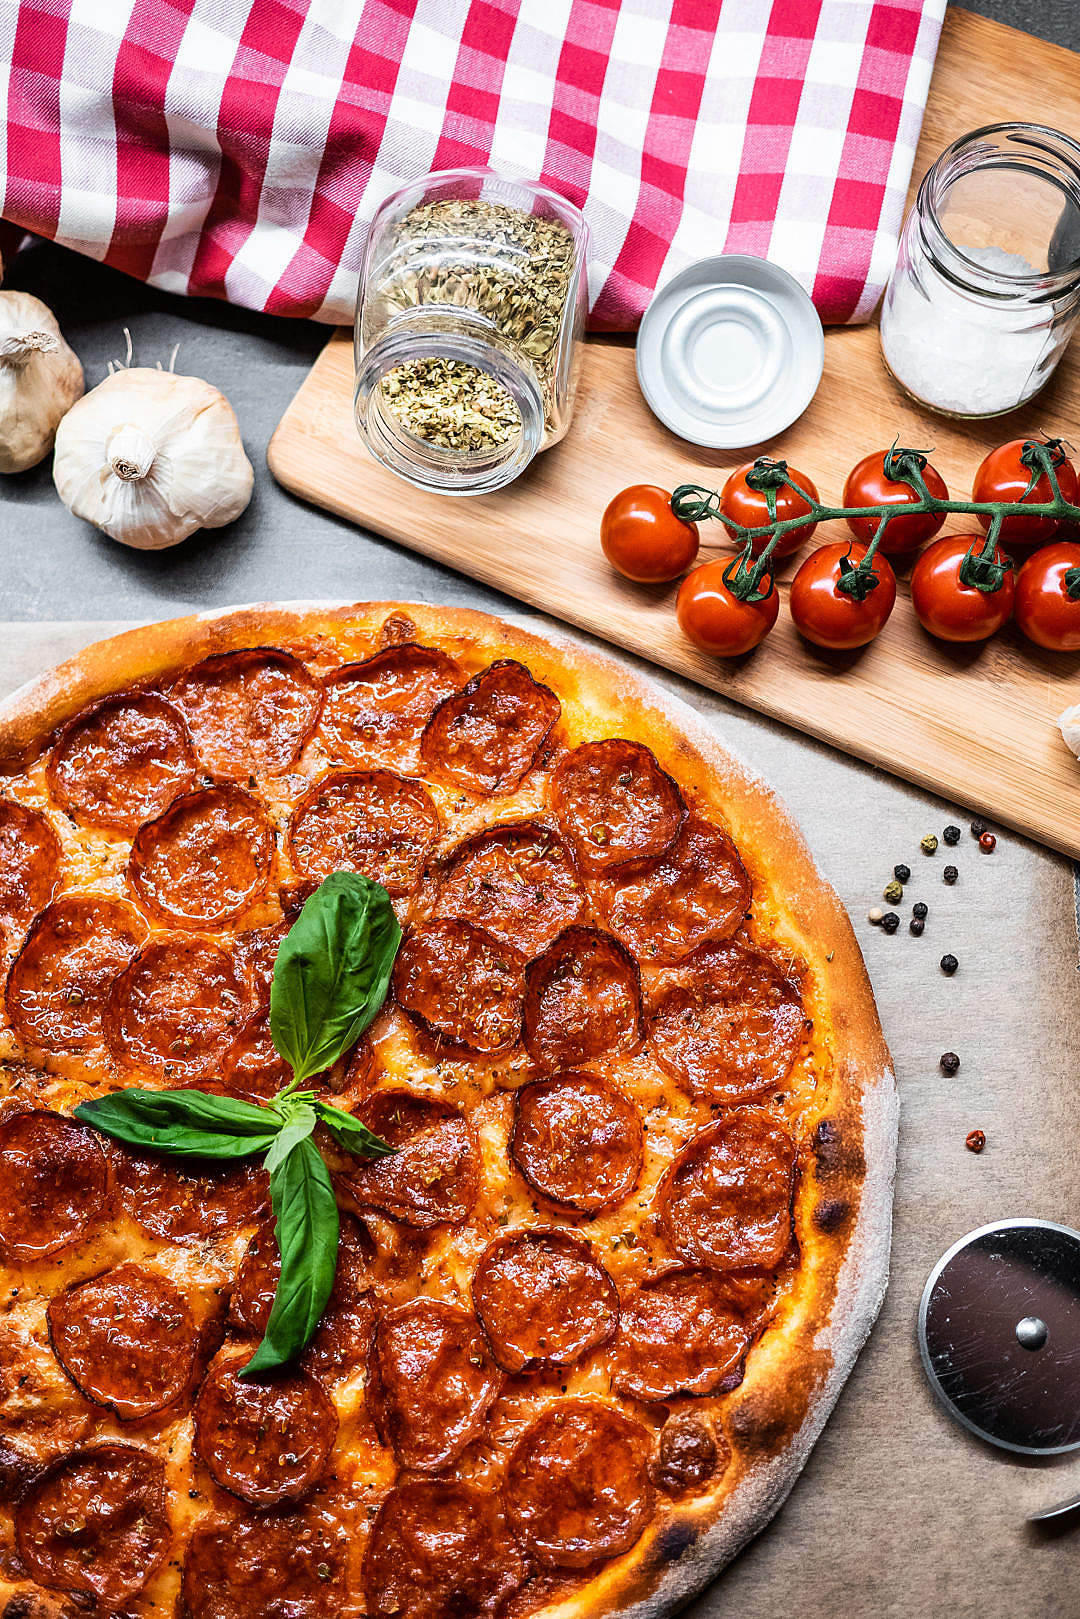 Download Pizza Salami Vertical FREE Stock Photo